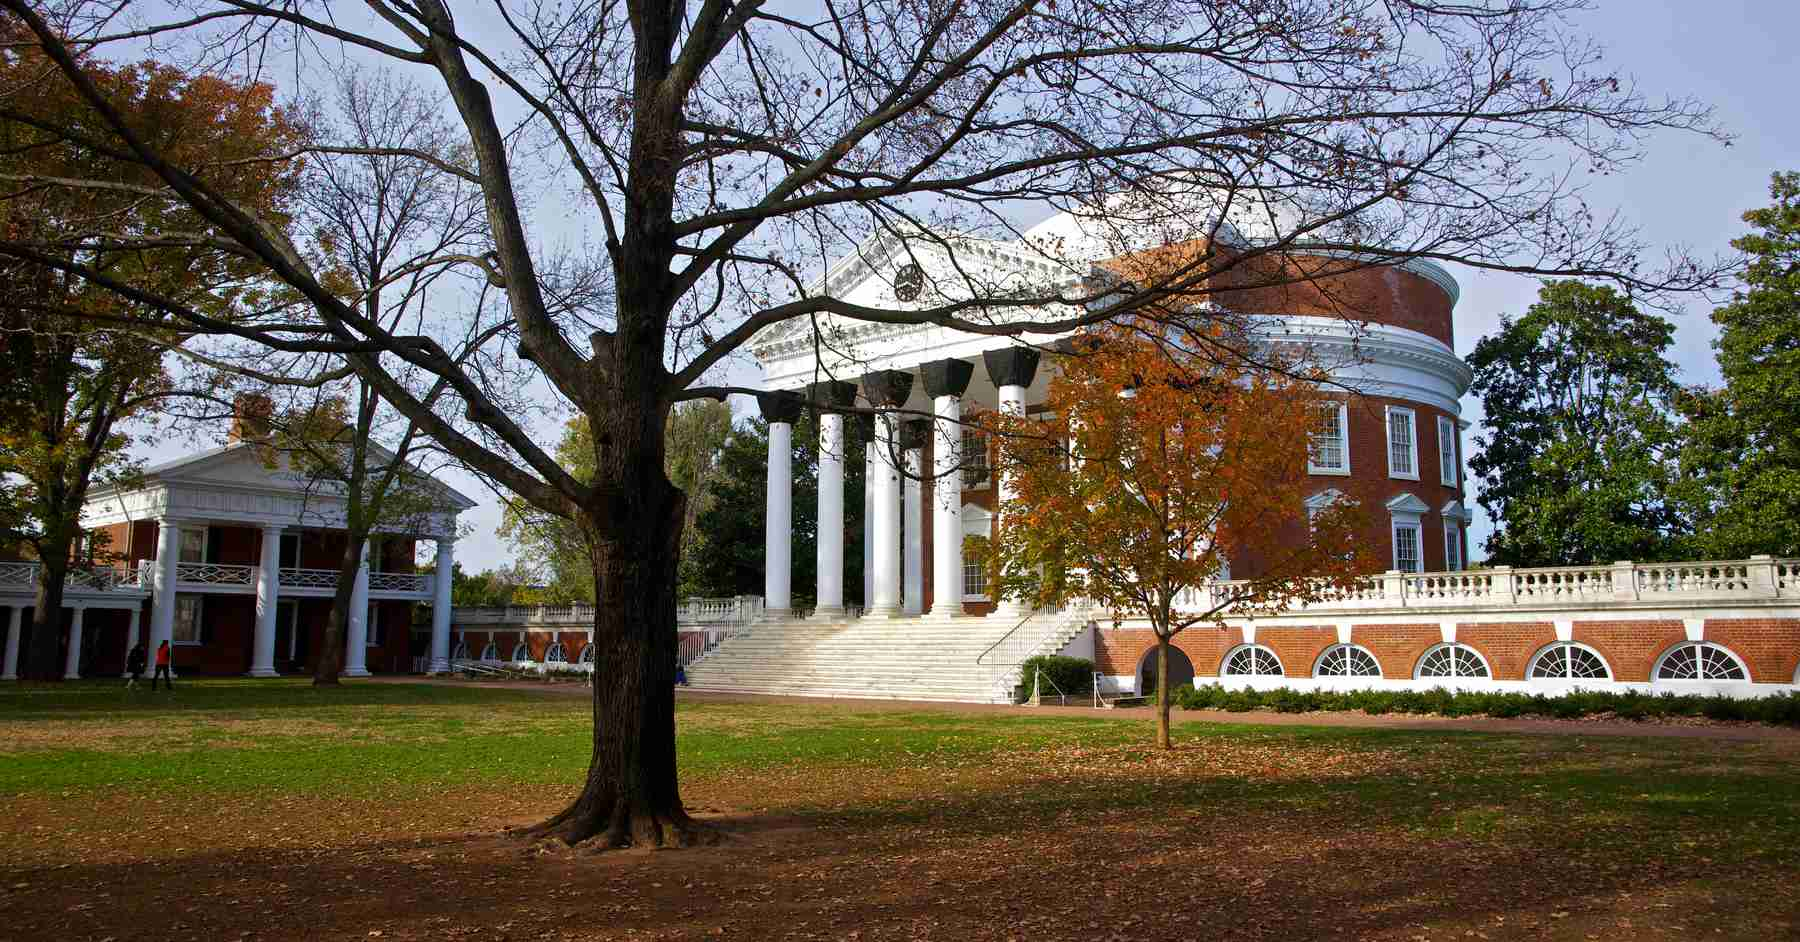 university of virginia supplement essays The university of virginia admissions essays have been released for the 2013-2014 admissions cycle and we've got the supplemental questions for our readers.